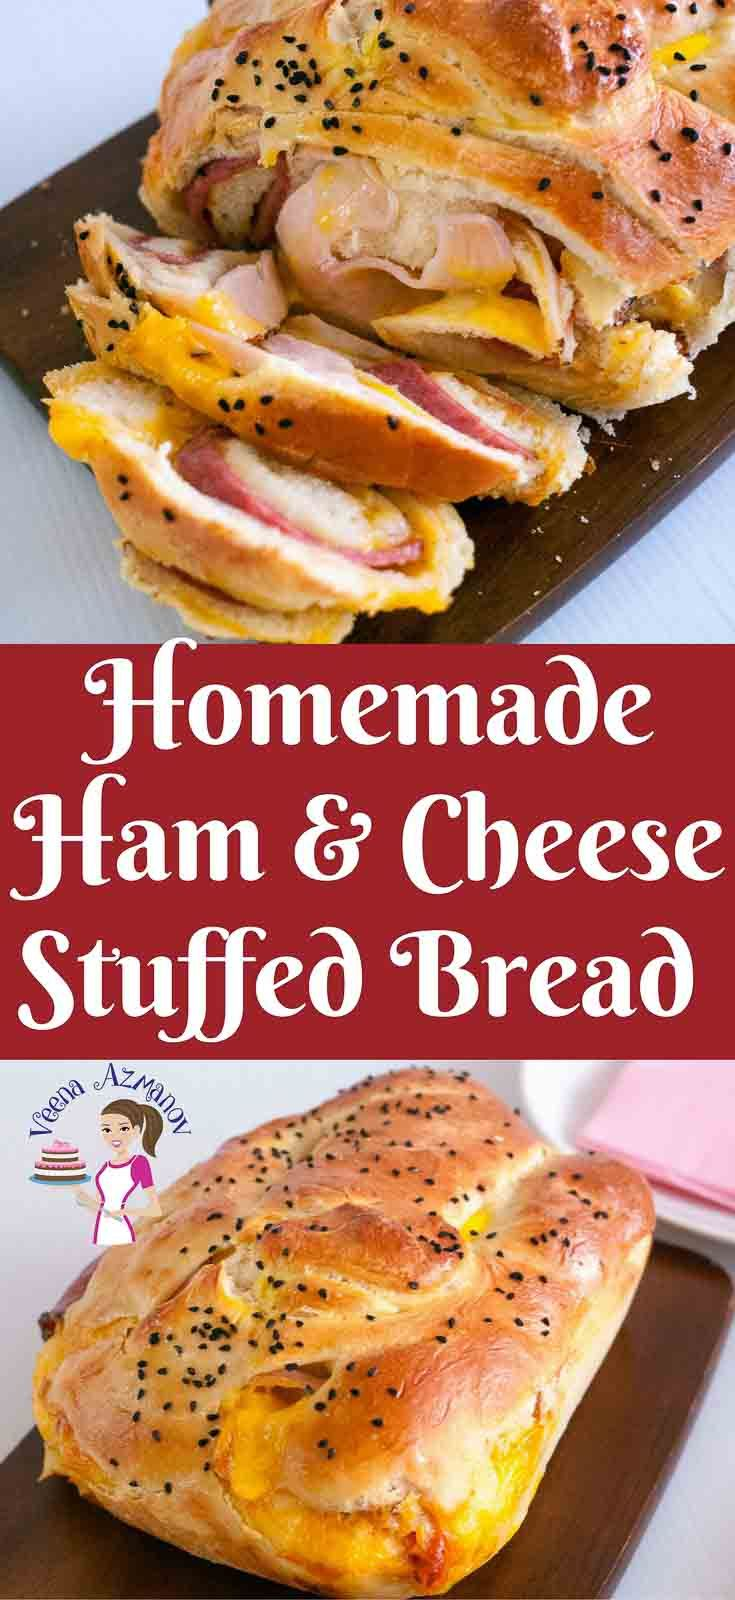 Fresh homemade ham and cheese stuffed bread is an absolute treat to wake up to on any day of the week especially on a a long weekend when you feeling lazy. This dough is simple, easy and effortless to bring together. A little planning in advance and breakfast or snack is as easy as pie.